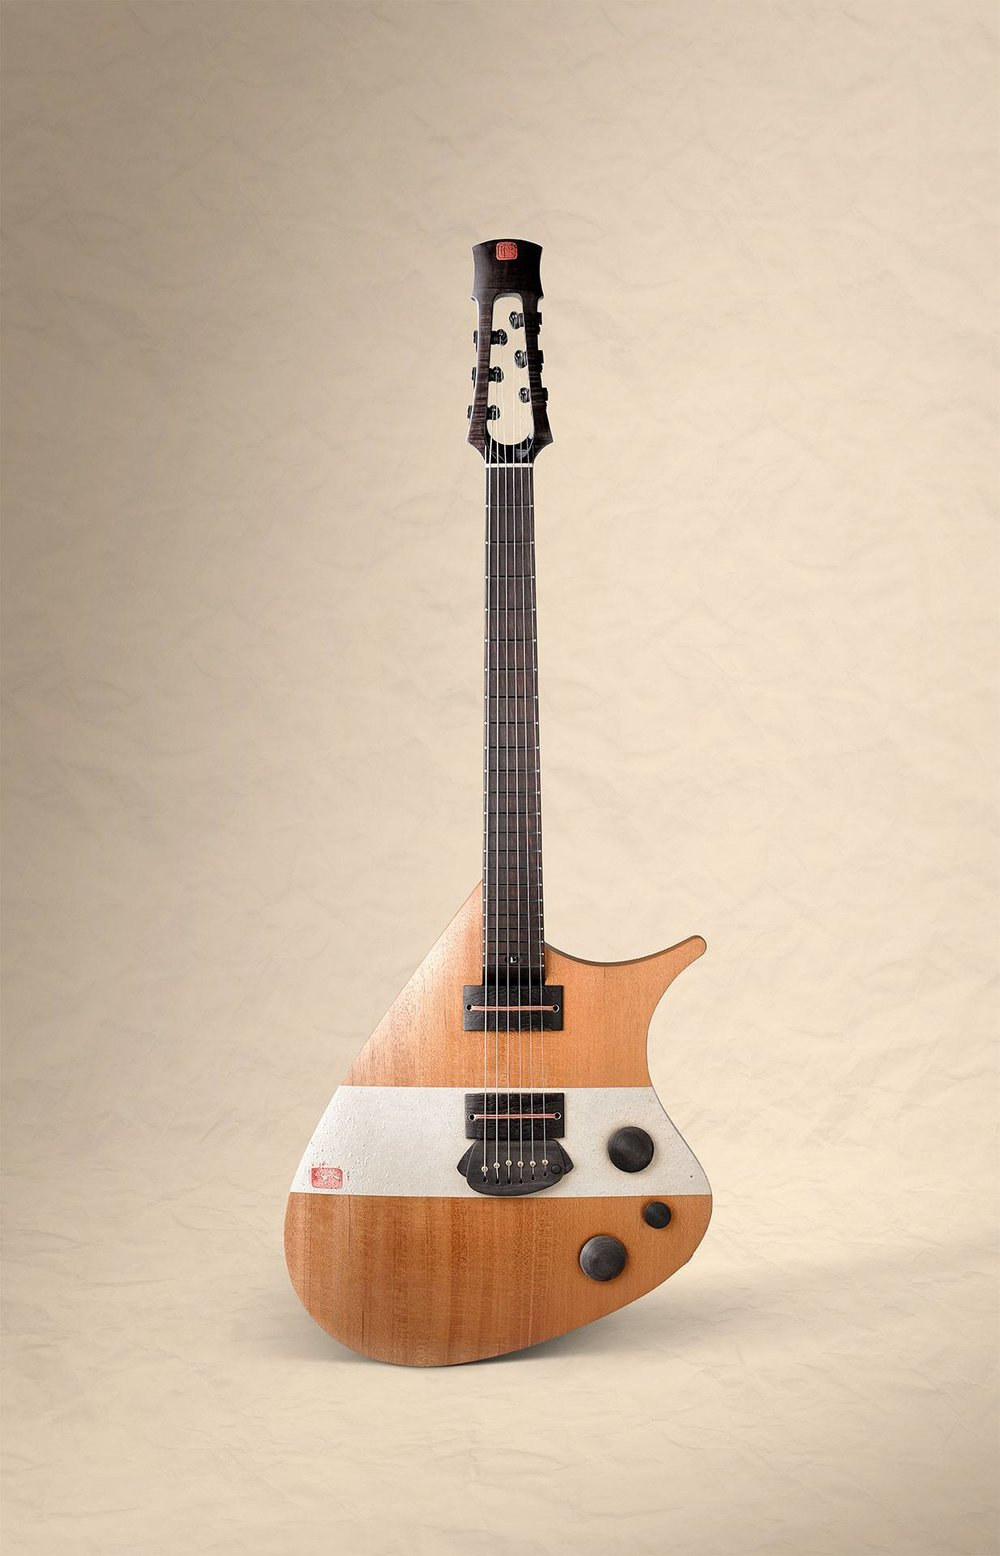 Guitars Electric Guitar Schematics 2 10 From 31 Votes Phaeton A Pinnacle Of Tao Company The Is Hollow Body Jazz Box Loosely Based On Orville Gibsons 03 Style With Major Influences